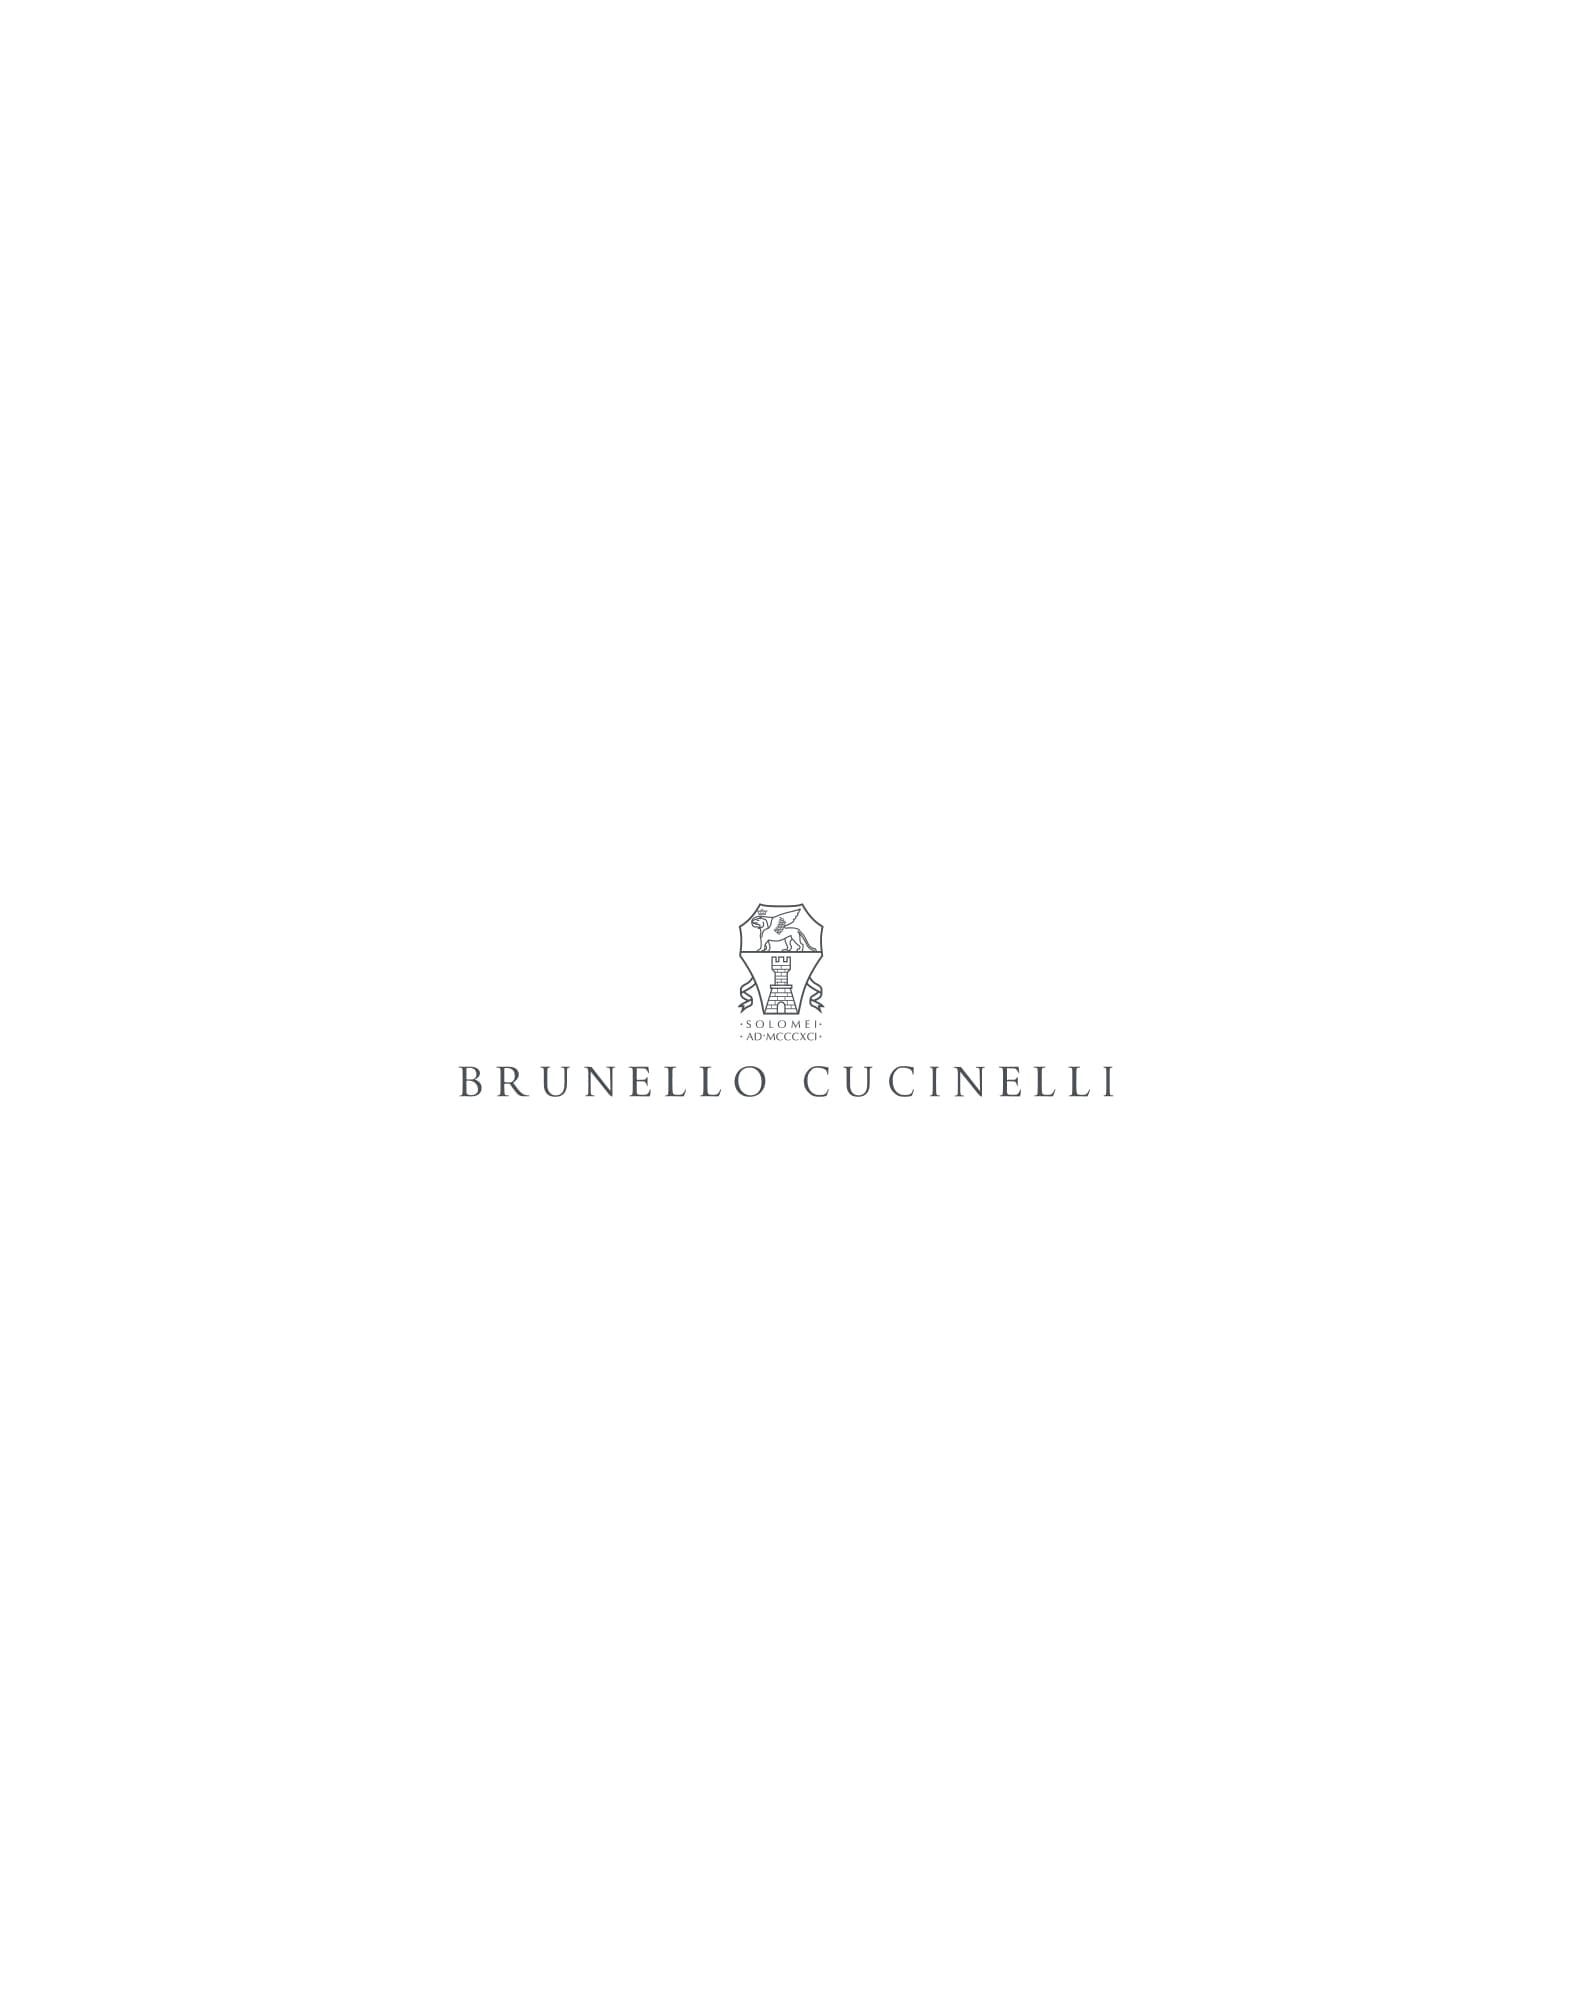 Blazer with pocket square Butter Woman - Brunello Cucinelli